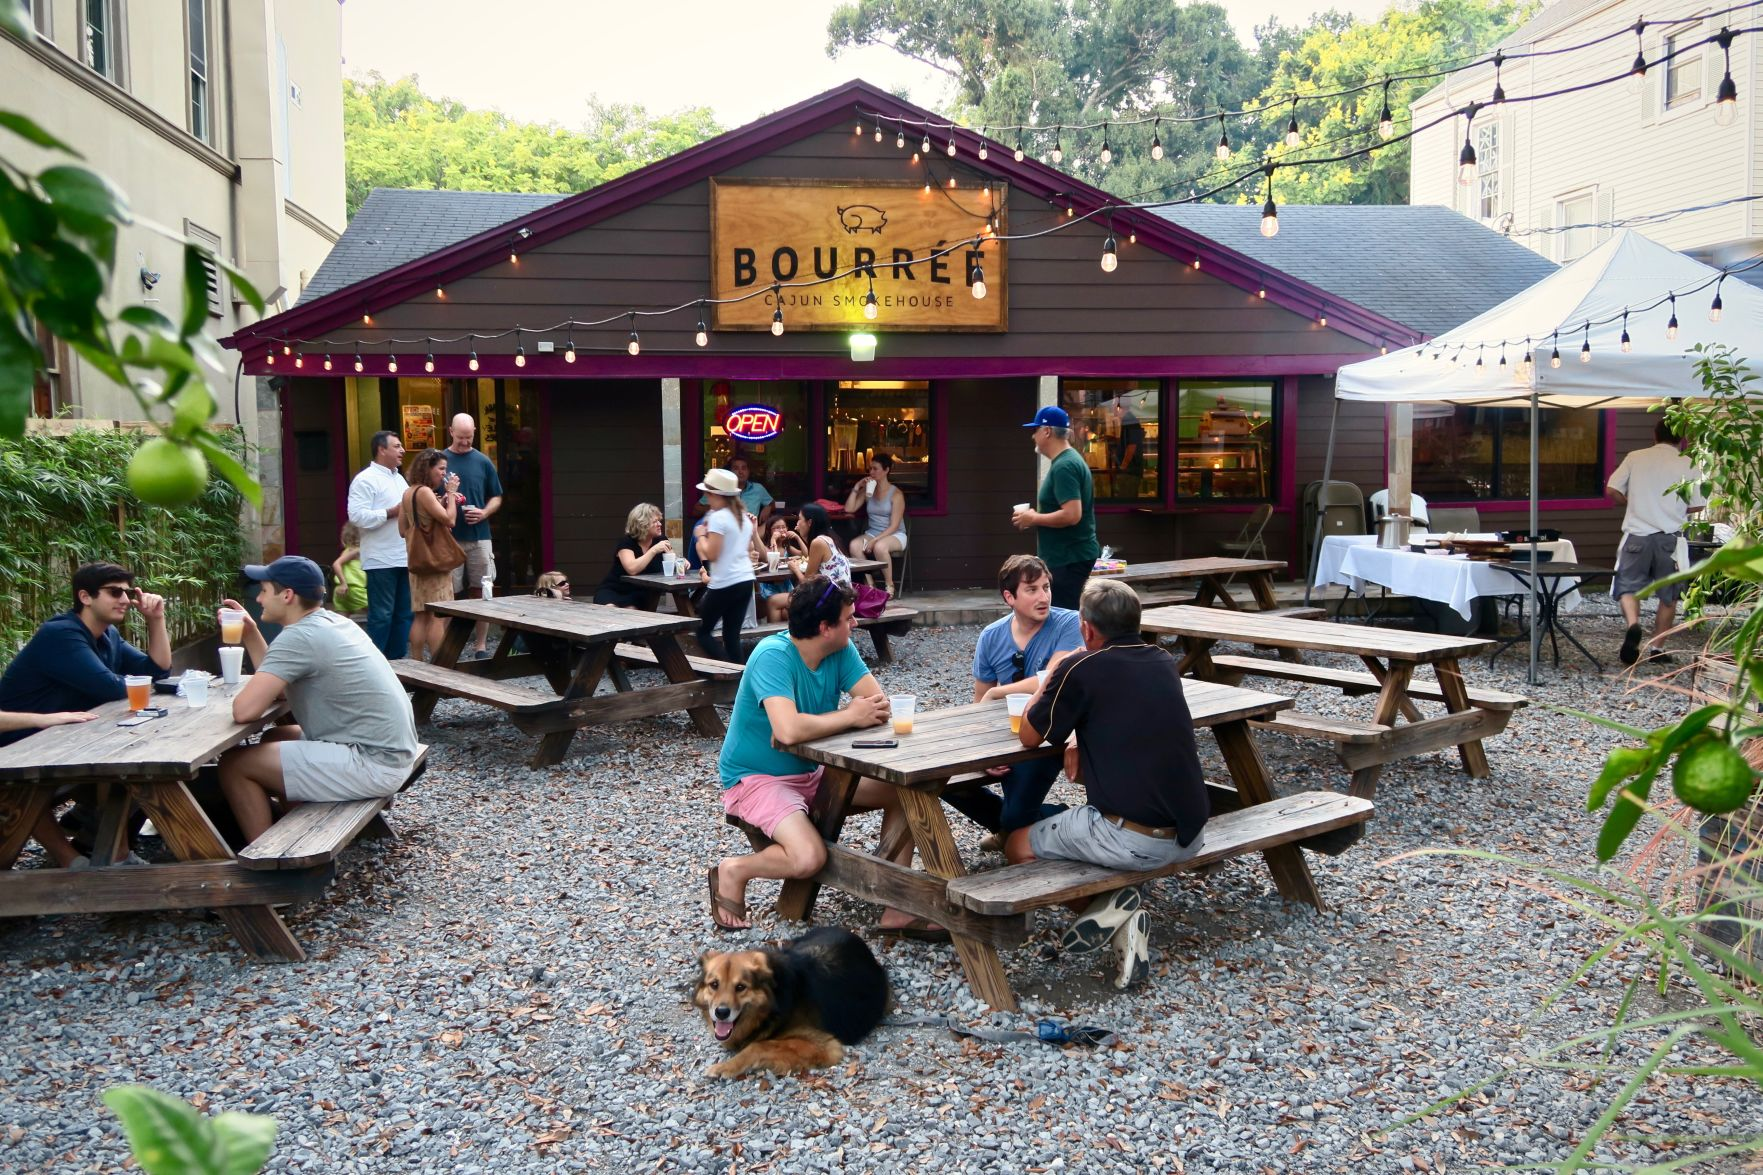 Advocate Staff Photo By Ian McNulty   The One Time Parking Lot Of Bourree  At Boucherie In New Orleans Has Been Converted To A Patio And Beer Garden  For ...